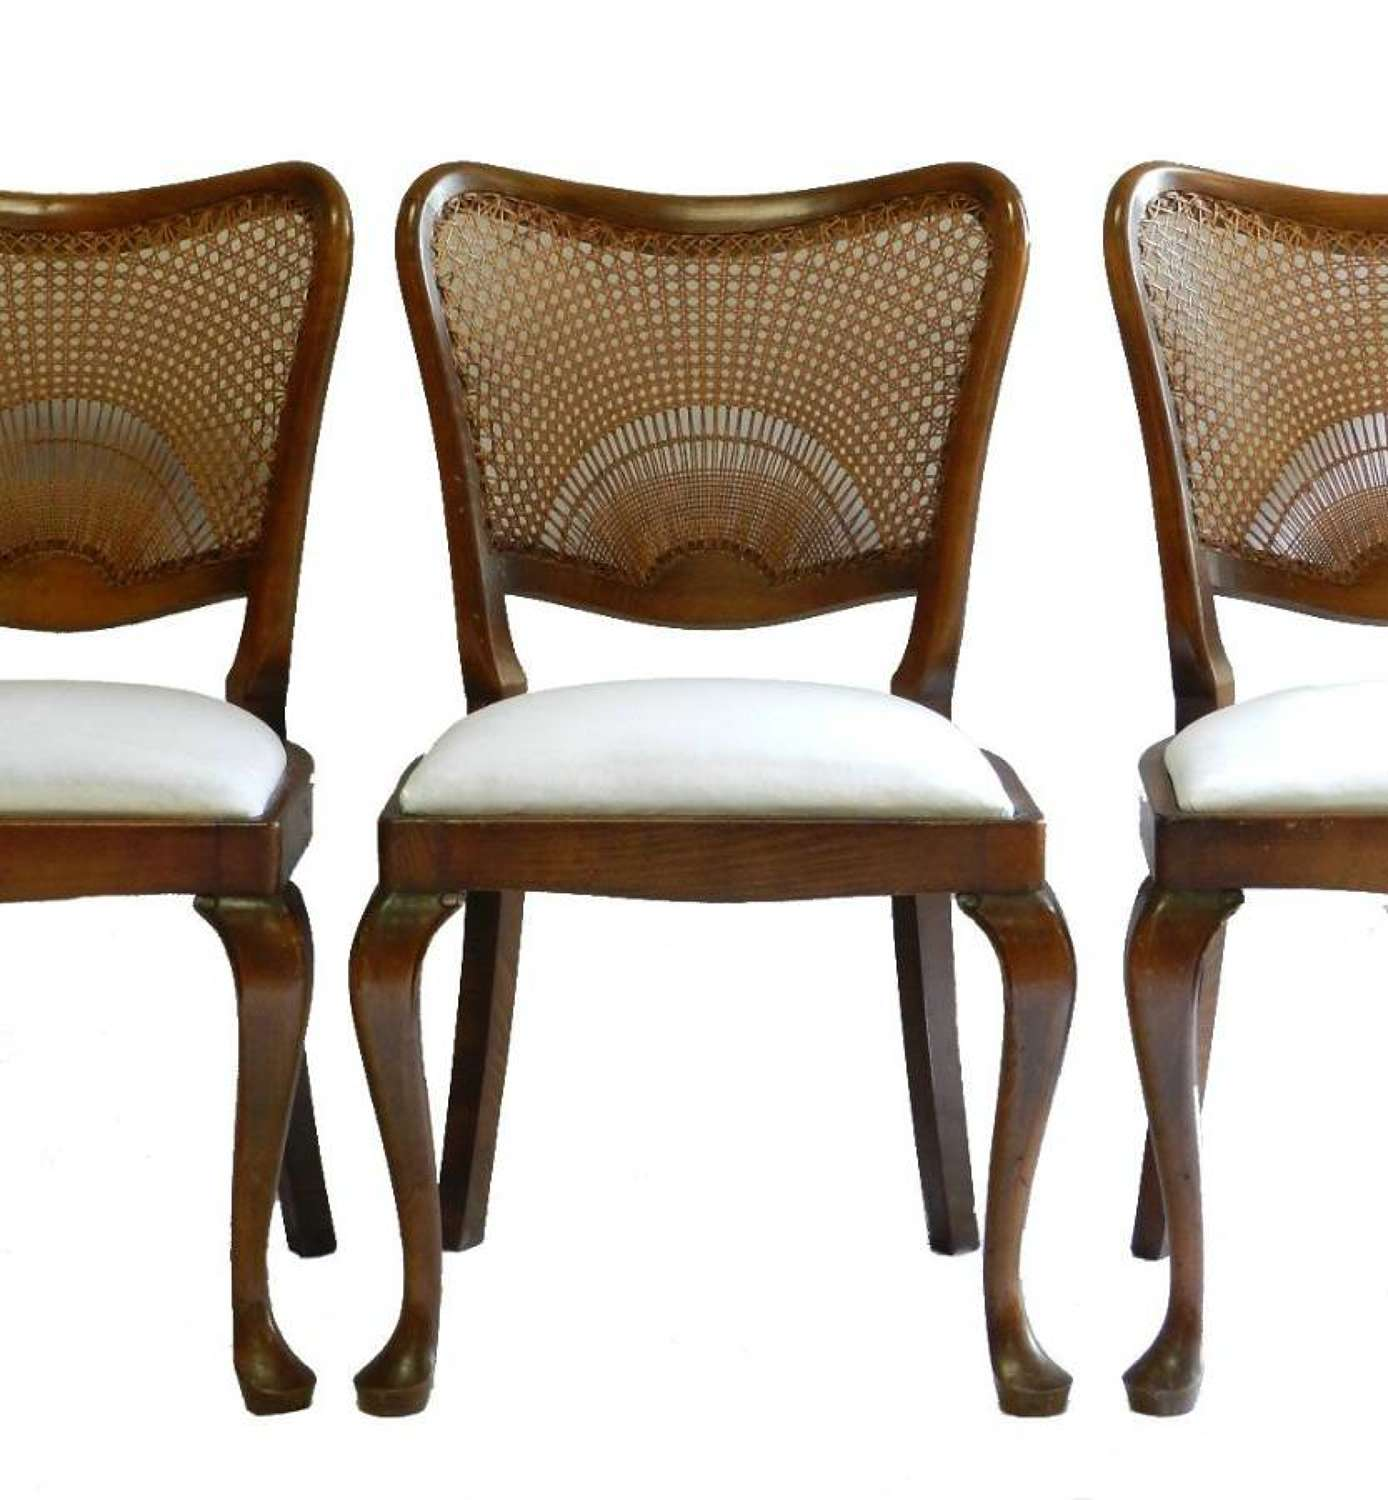 6 French Sunray Art Deco era Dining Chairs ready for top covers